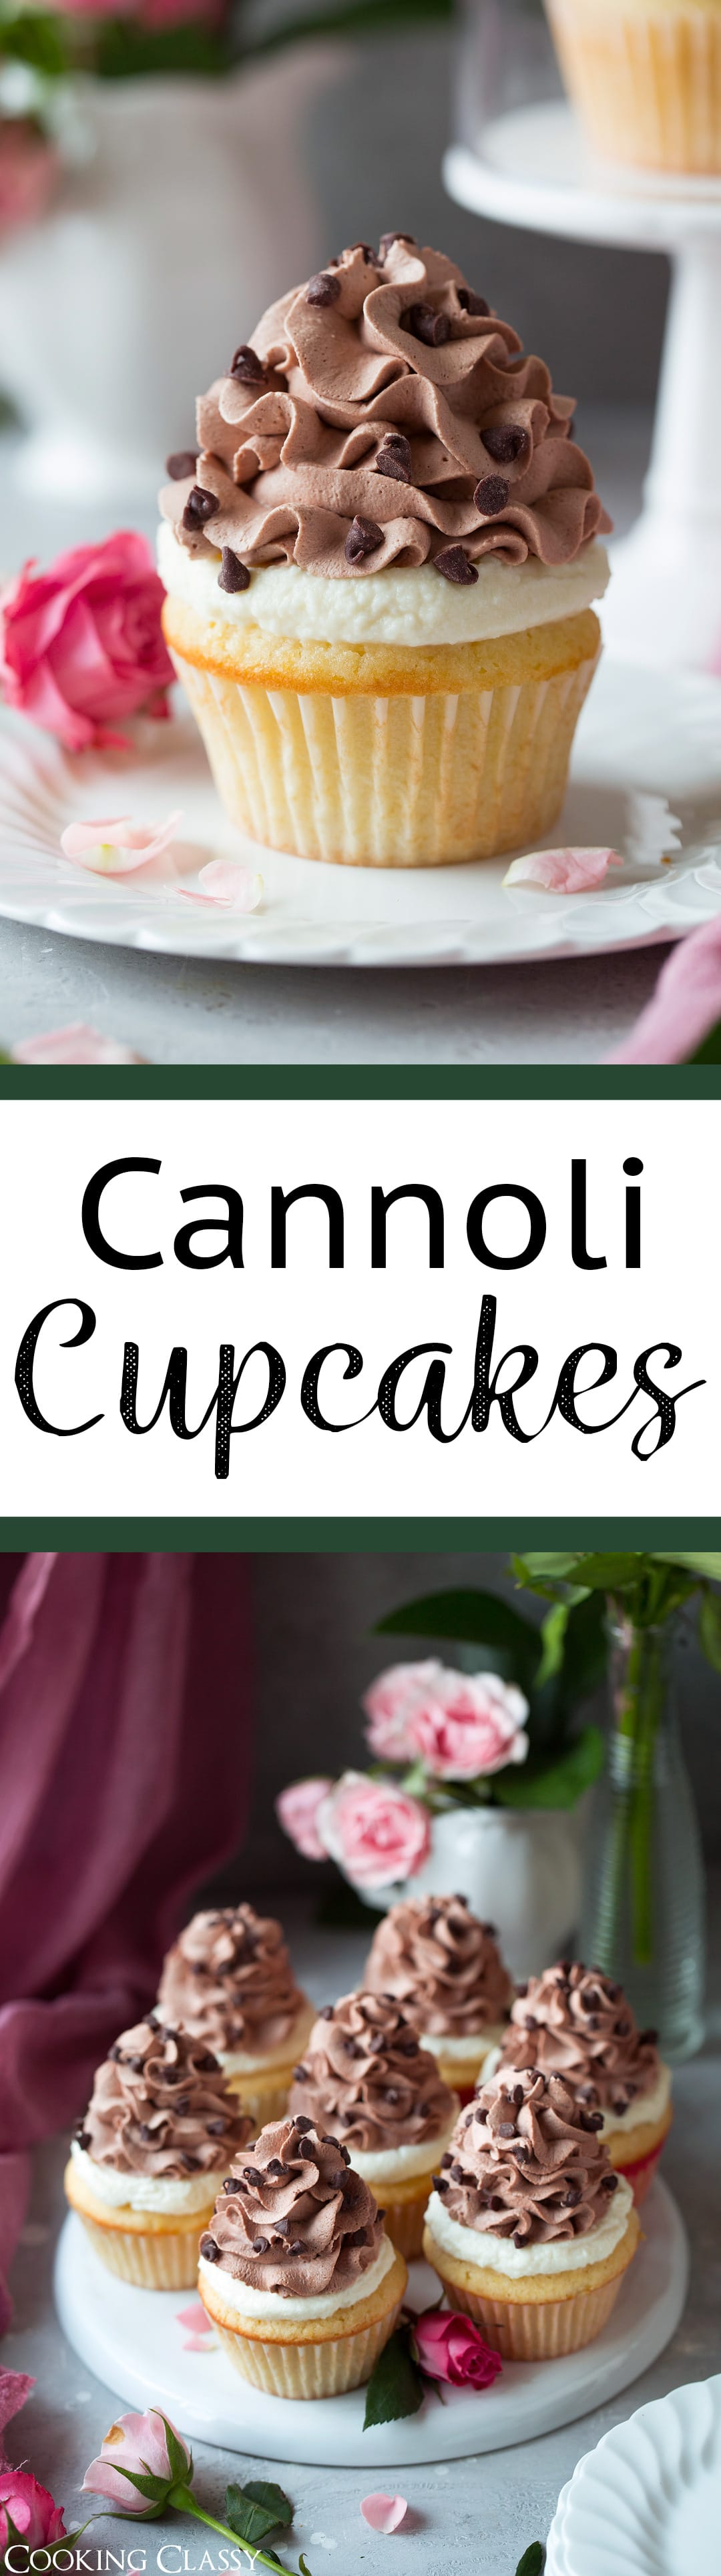 Cannoli Cupcakes - These are incredibly dreamy cupcakes! You get a soft and fluffy vanilla buttermilk cupcake topped with a rich cannoli filling and it's finished with a silky smooth chocolate whipped cream. Perfect for any celebration, or just to bake up for fun because life needs cupcakes sometimes. #cupcakes #cake #cannoli #cannolicupcakes #dessert #birthday #valentines